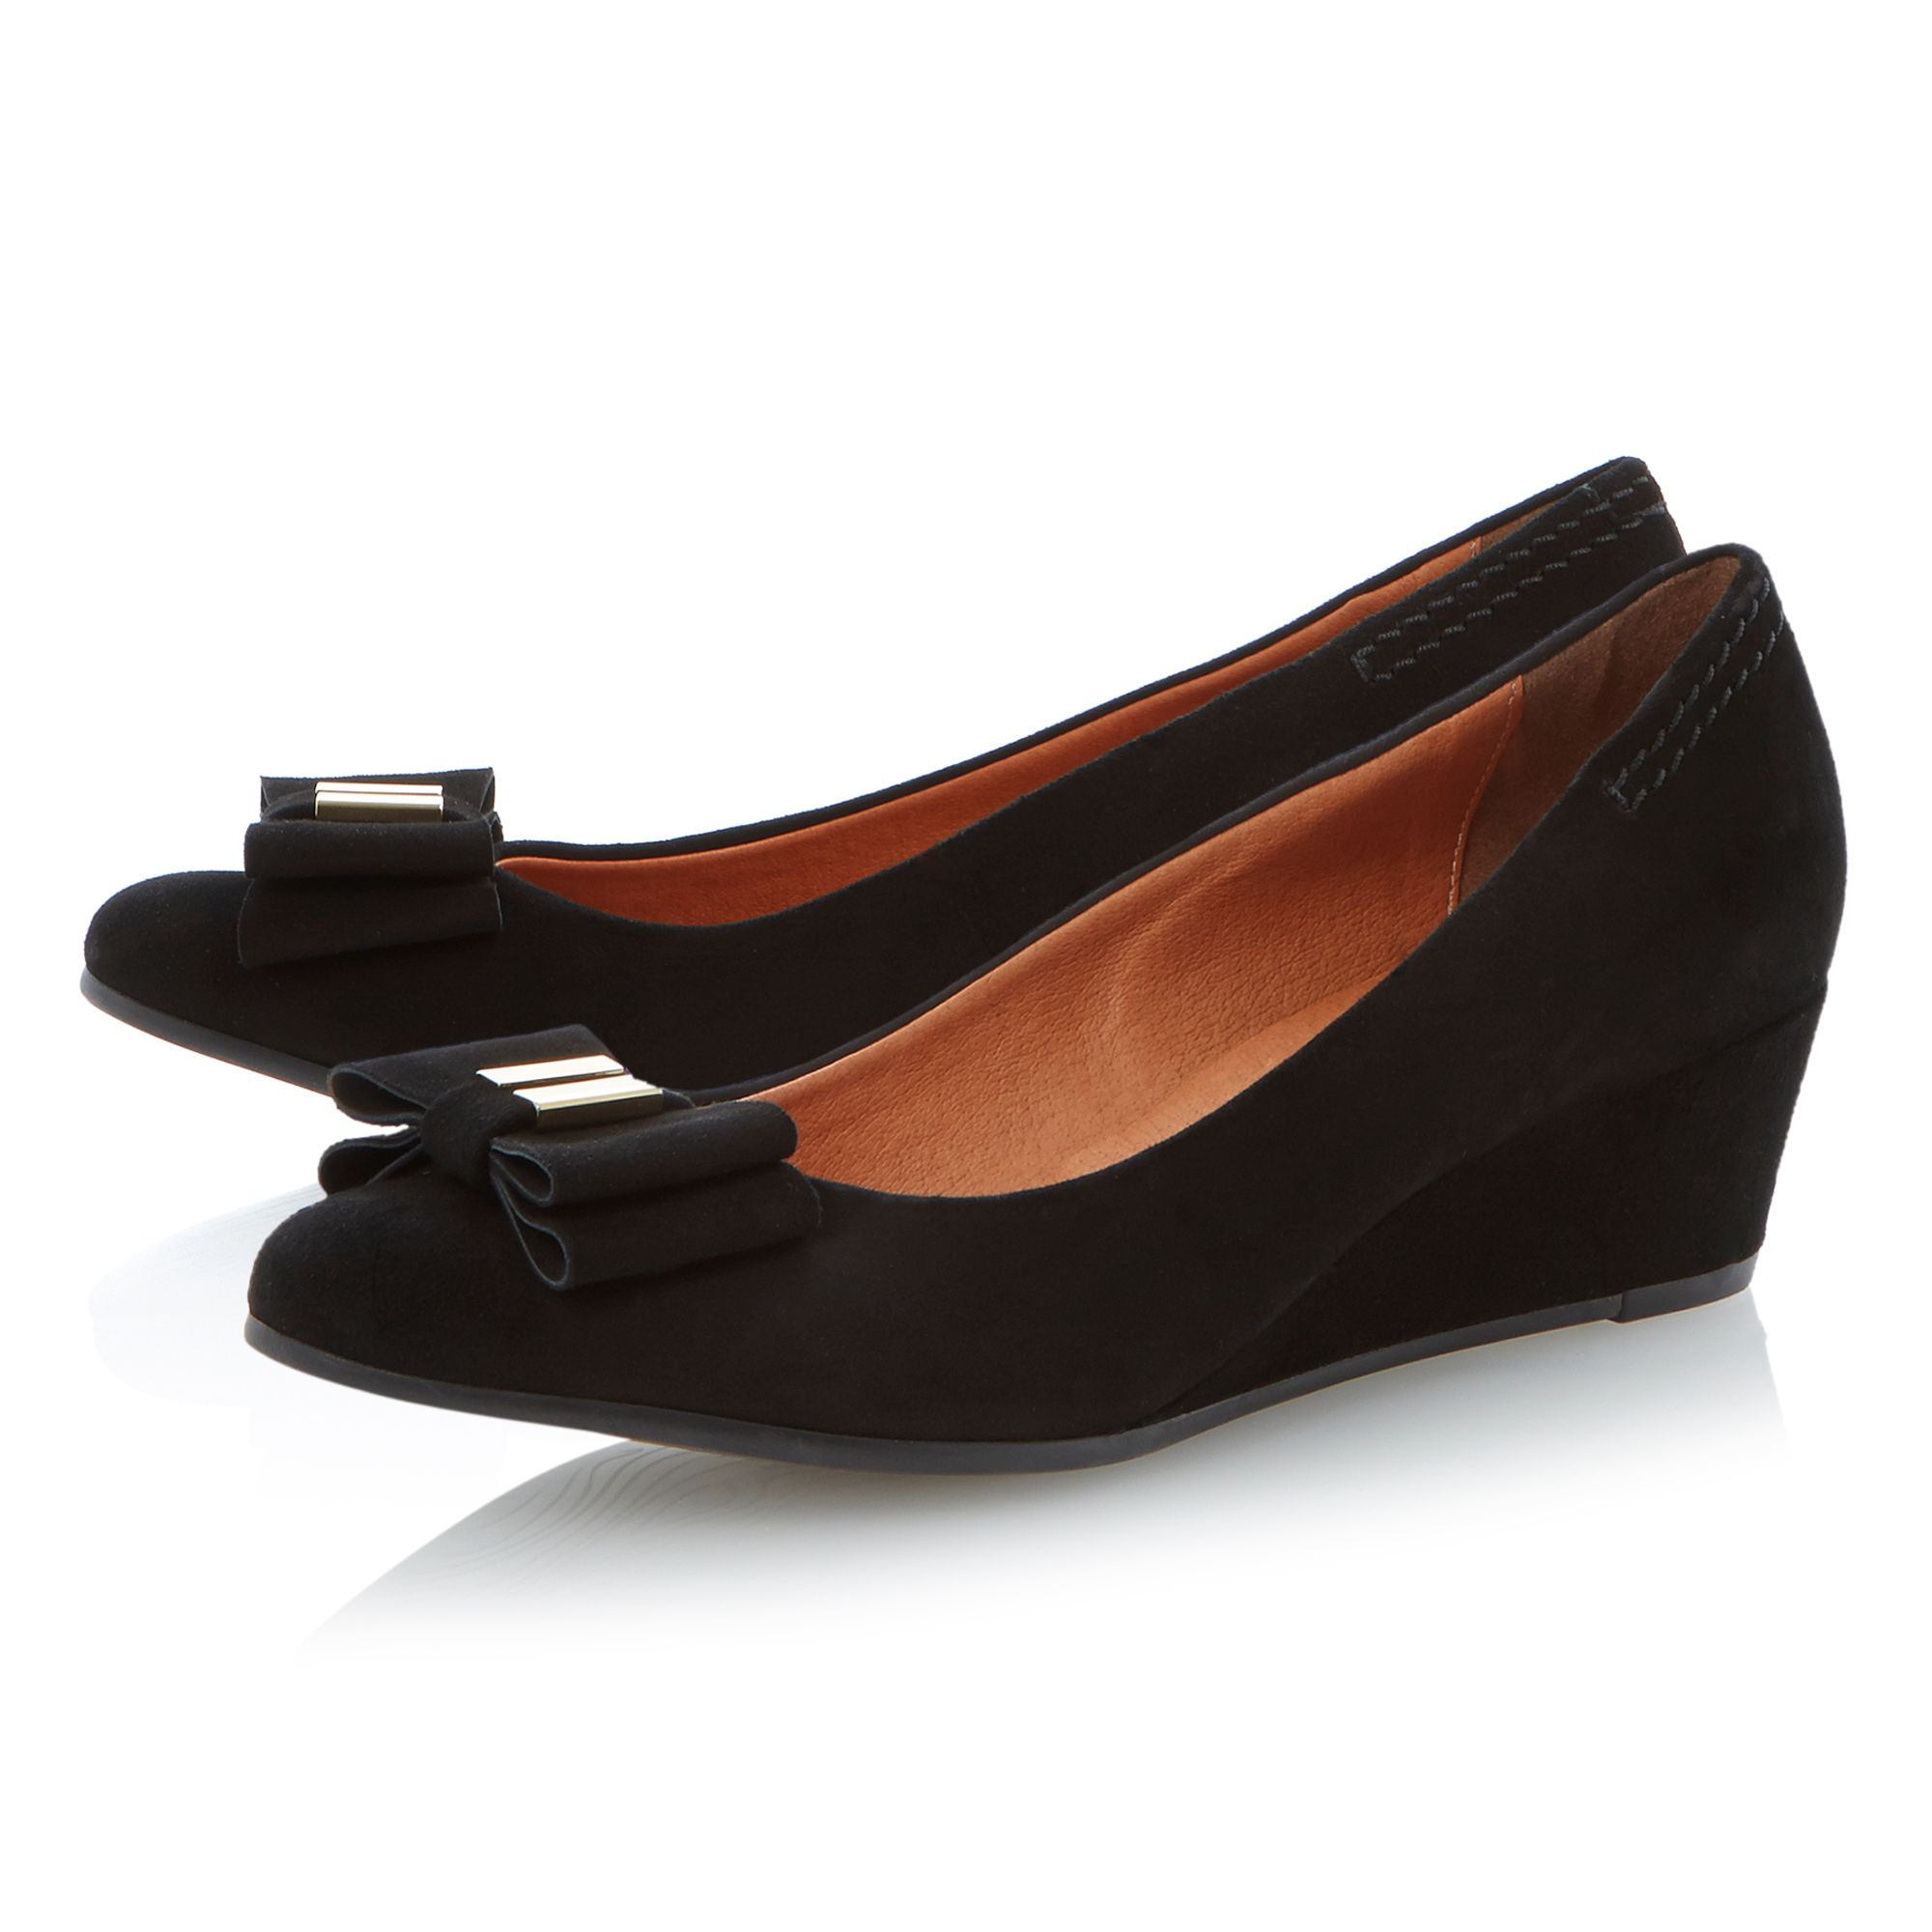 Adored suede pointed toe wedge court shoes